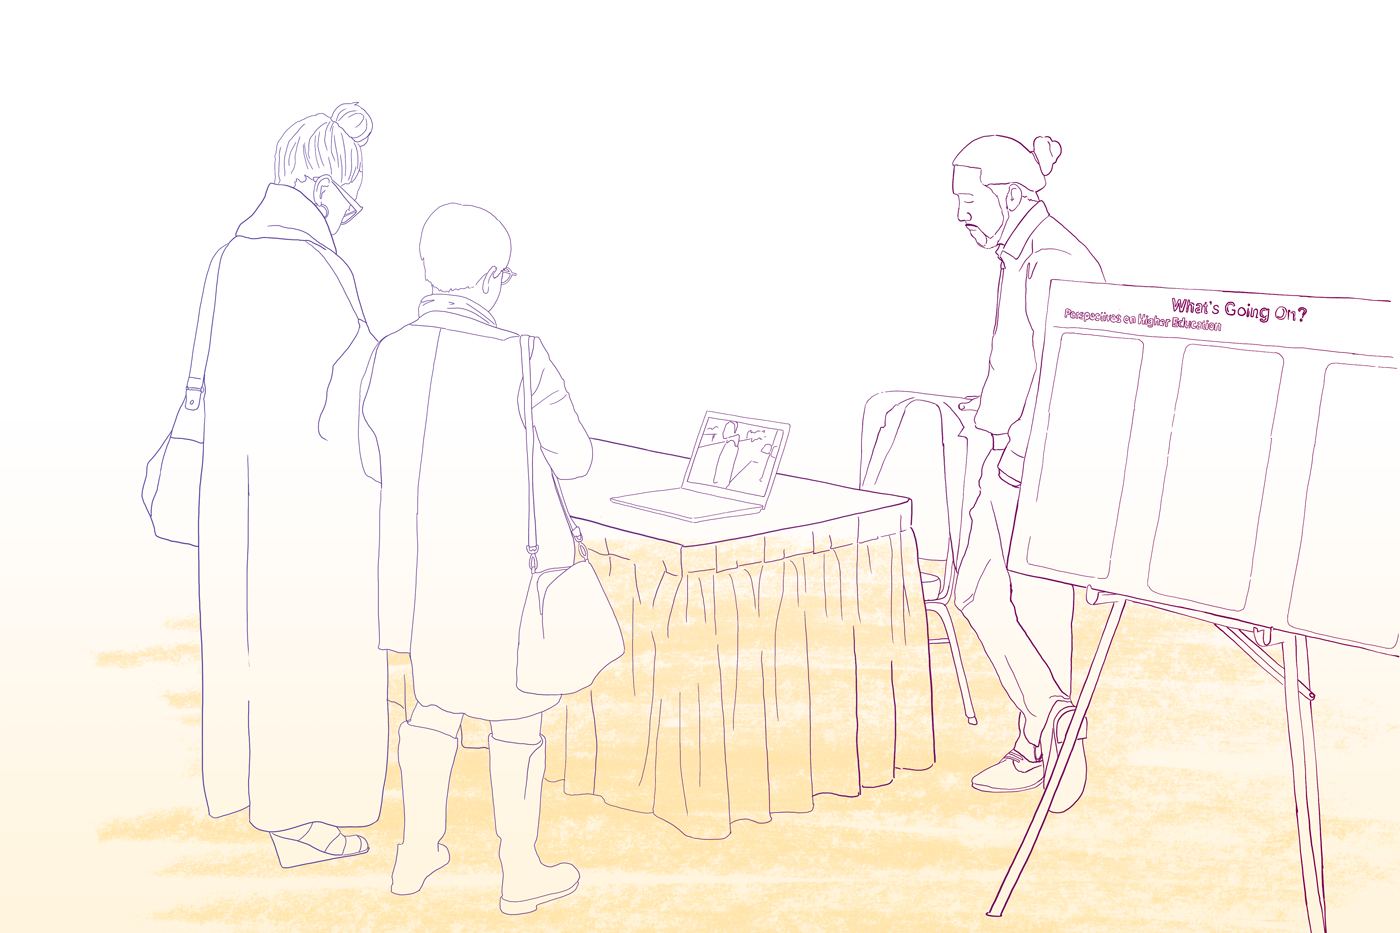 Line drawing of people at a table reviewing material at a computer together